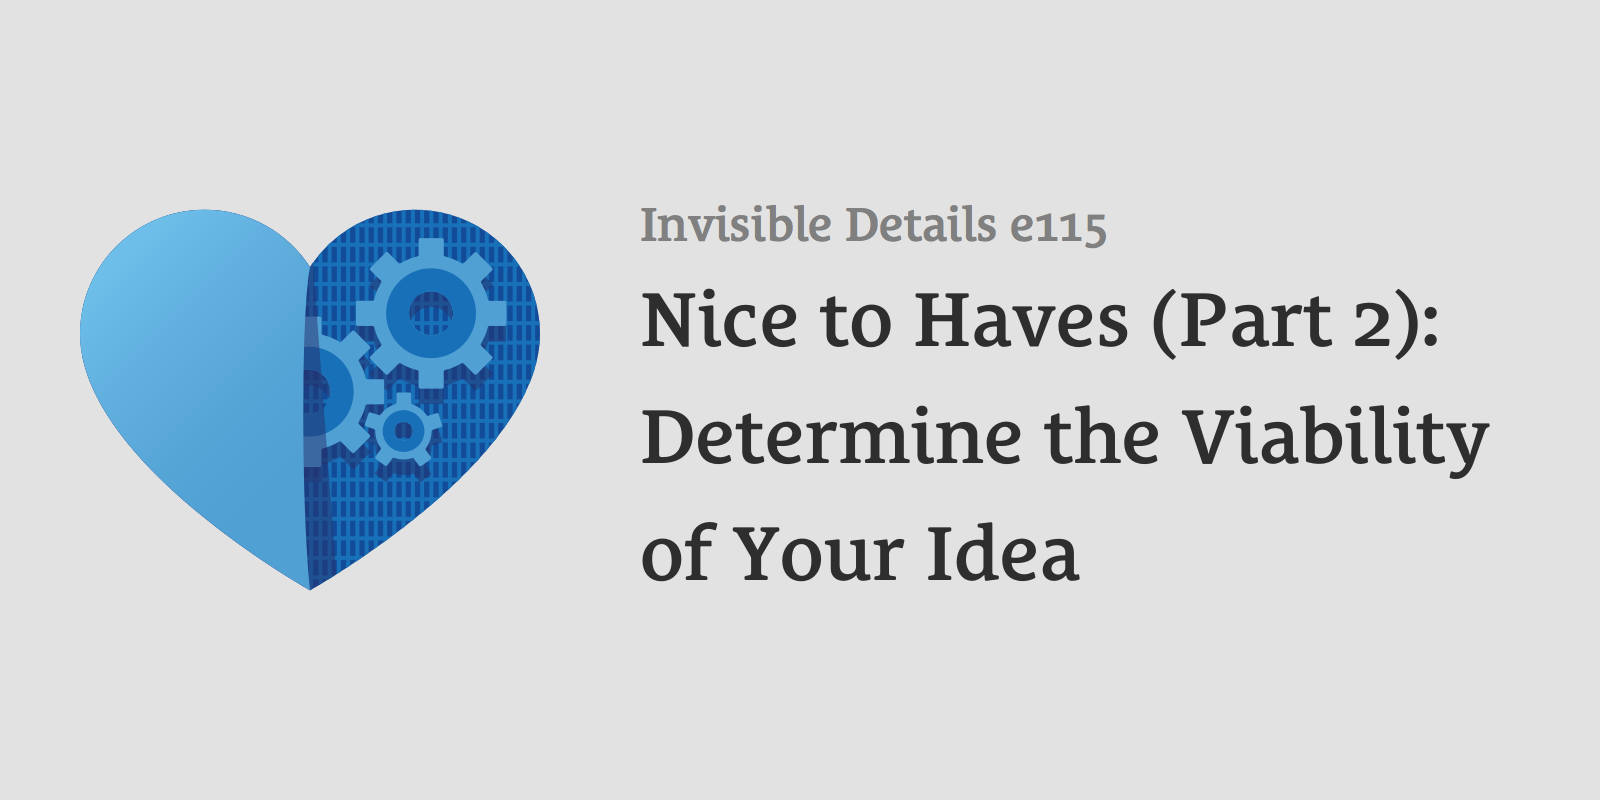 "./phantomjs generator.js invisibledetails 115 ""Nice to Haves (Part 2): Determine the Viability of Your Idea"""